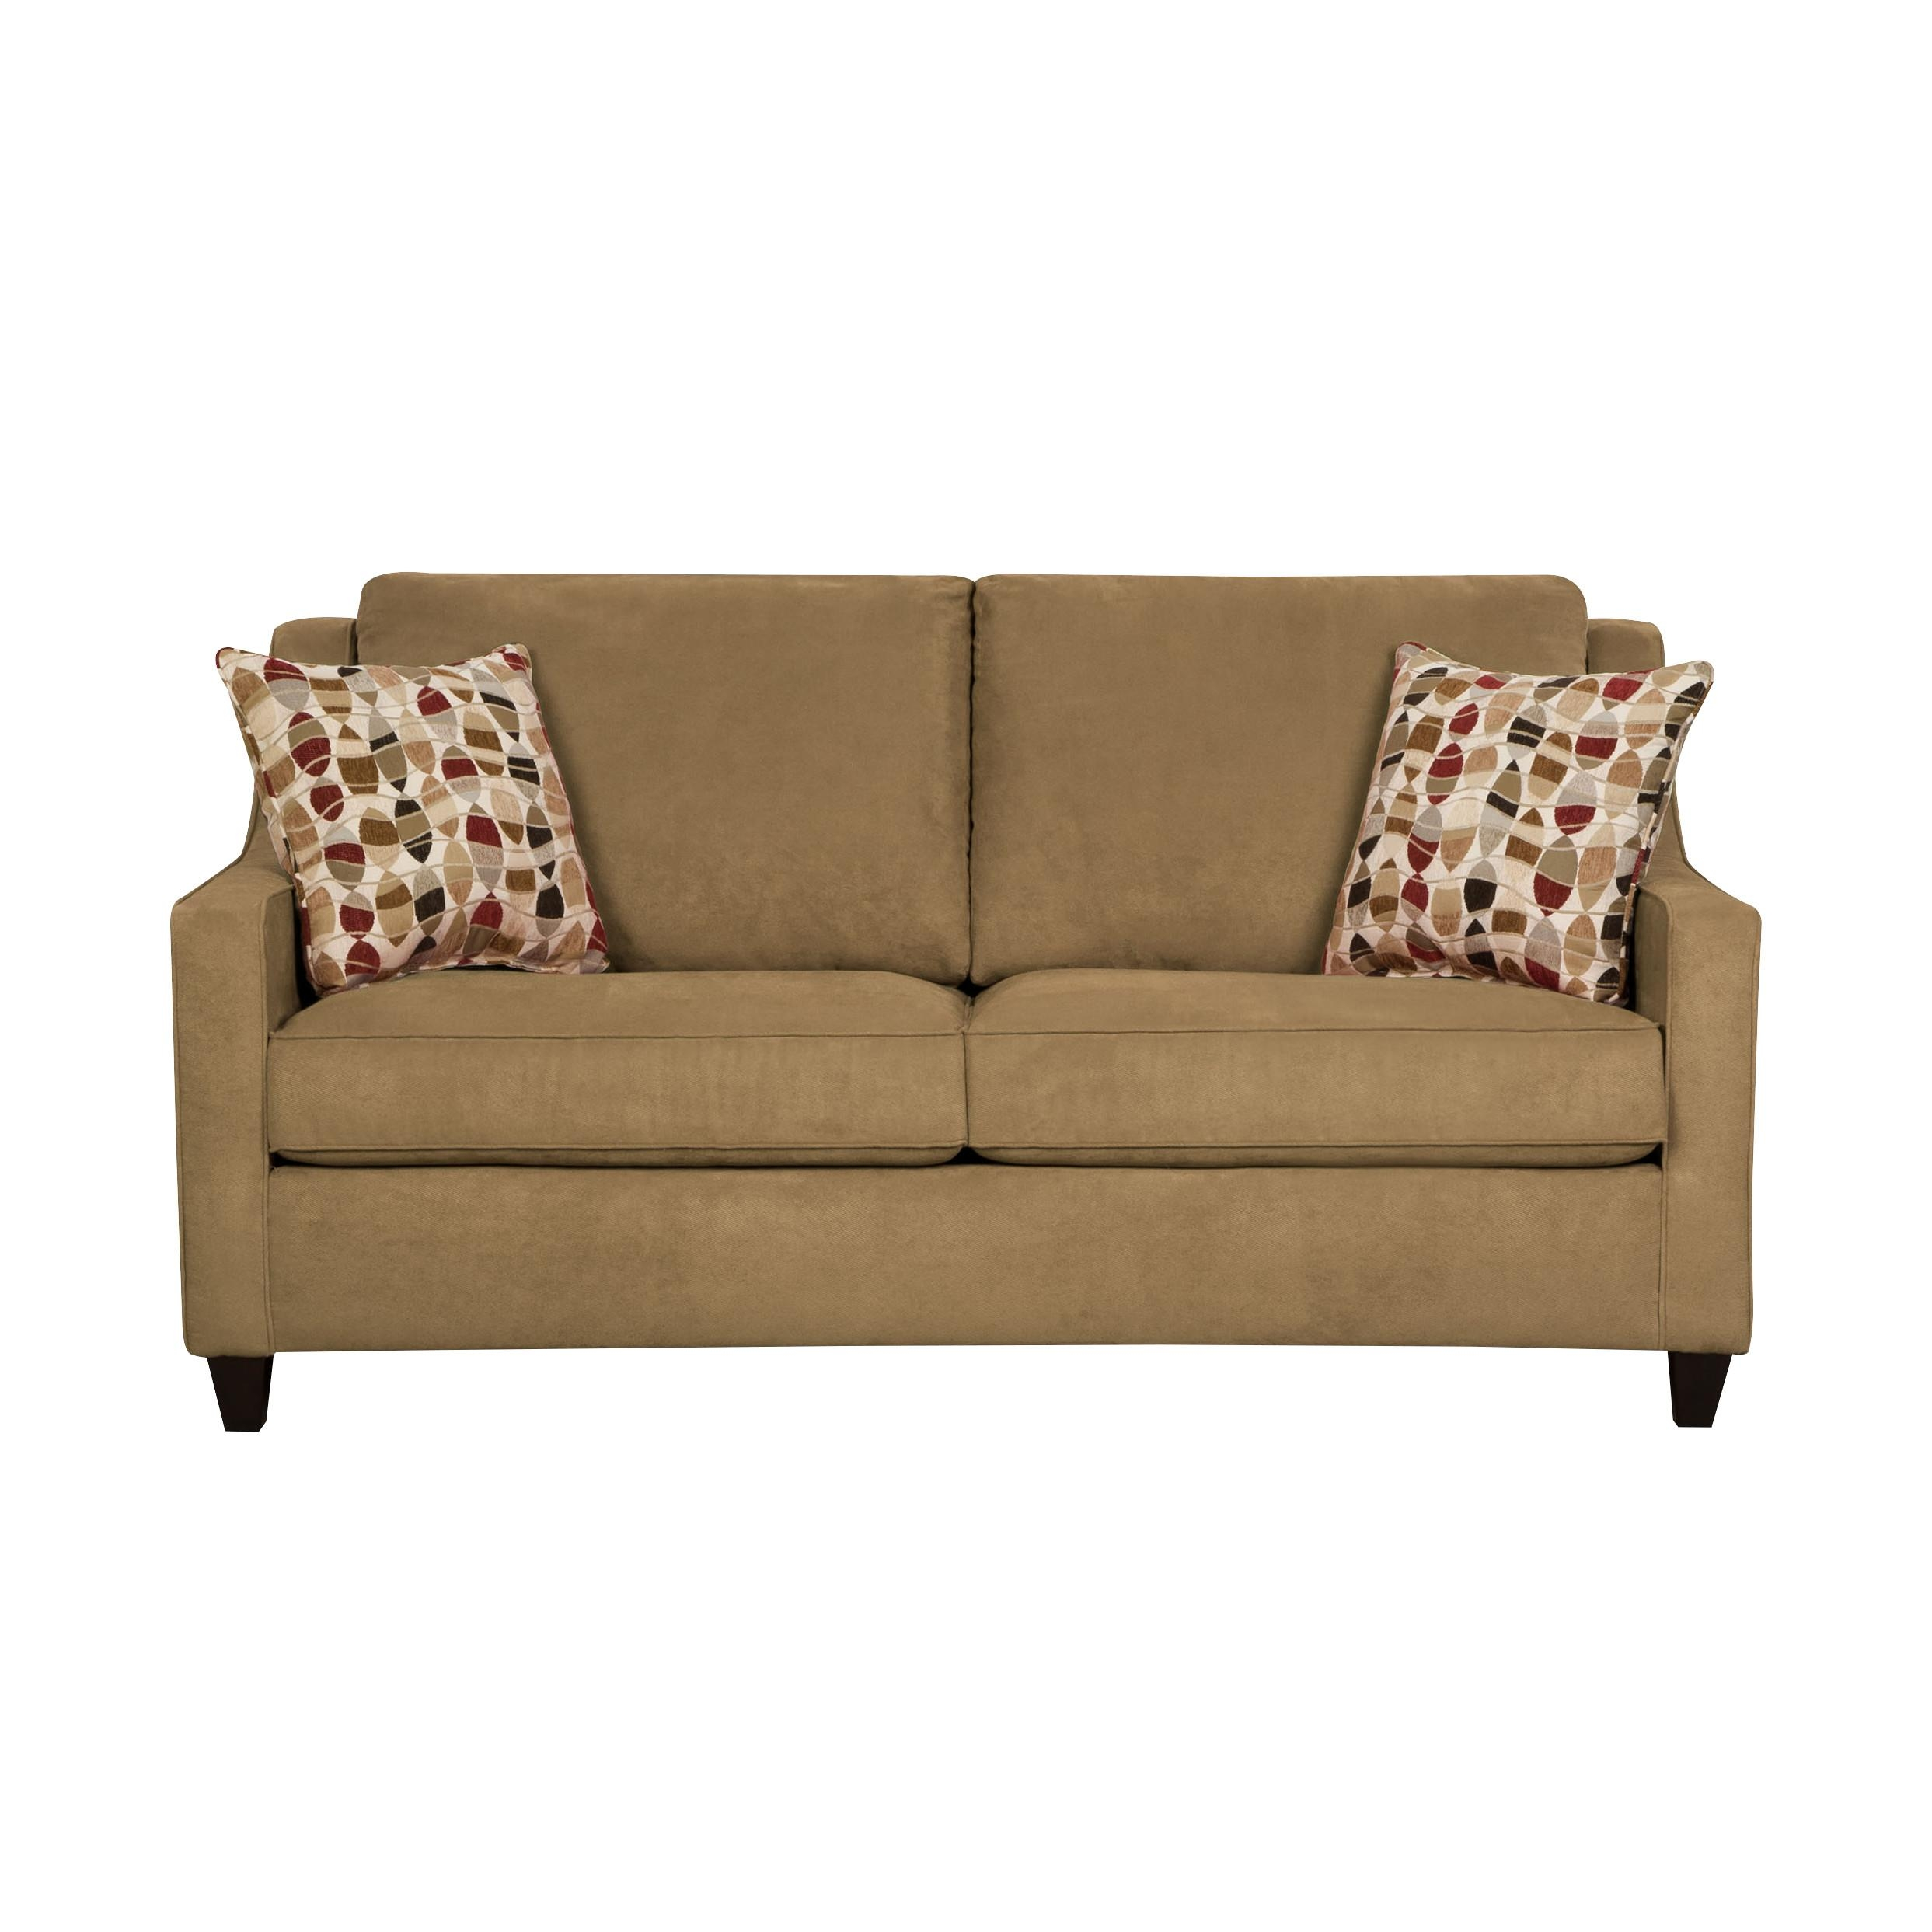 Furniture Home: Simmons Upholstery Twillo Twin Sleeper Sofa Twillo In Simmons Sleeper Sofas (View 9 of 20)